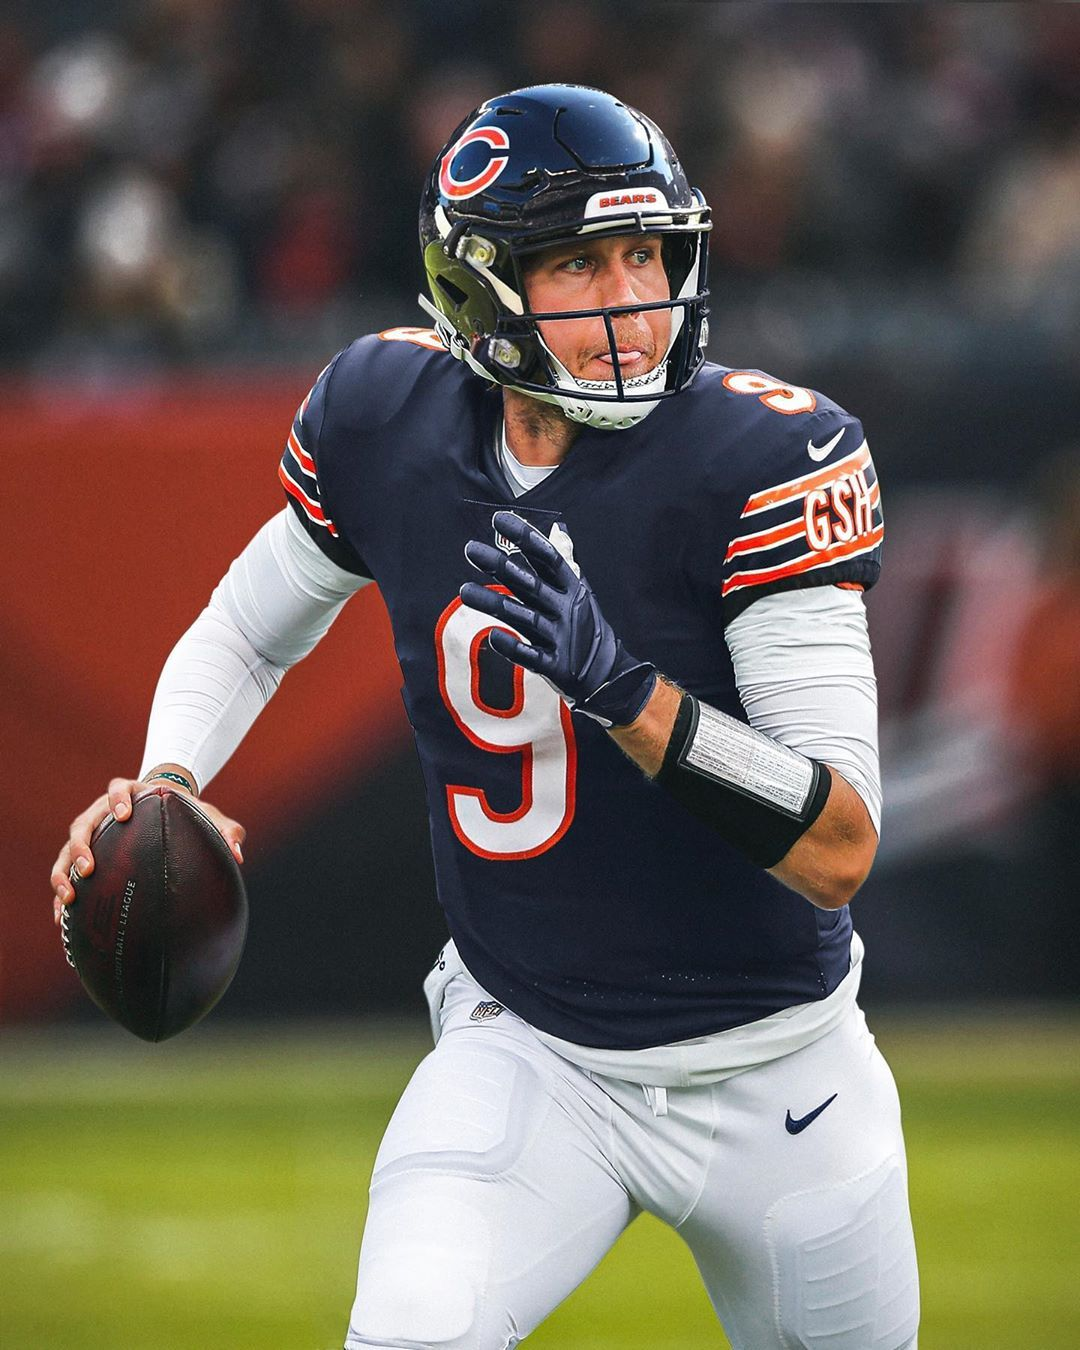 Ryan Lane On Instagram Nick Foles Is Heading To The Chicagobears Will He Start Over Trubisky Nfl Beardo In 2020 Chicago Bears Football Nfl Nfl Football Players